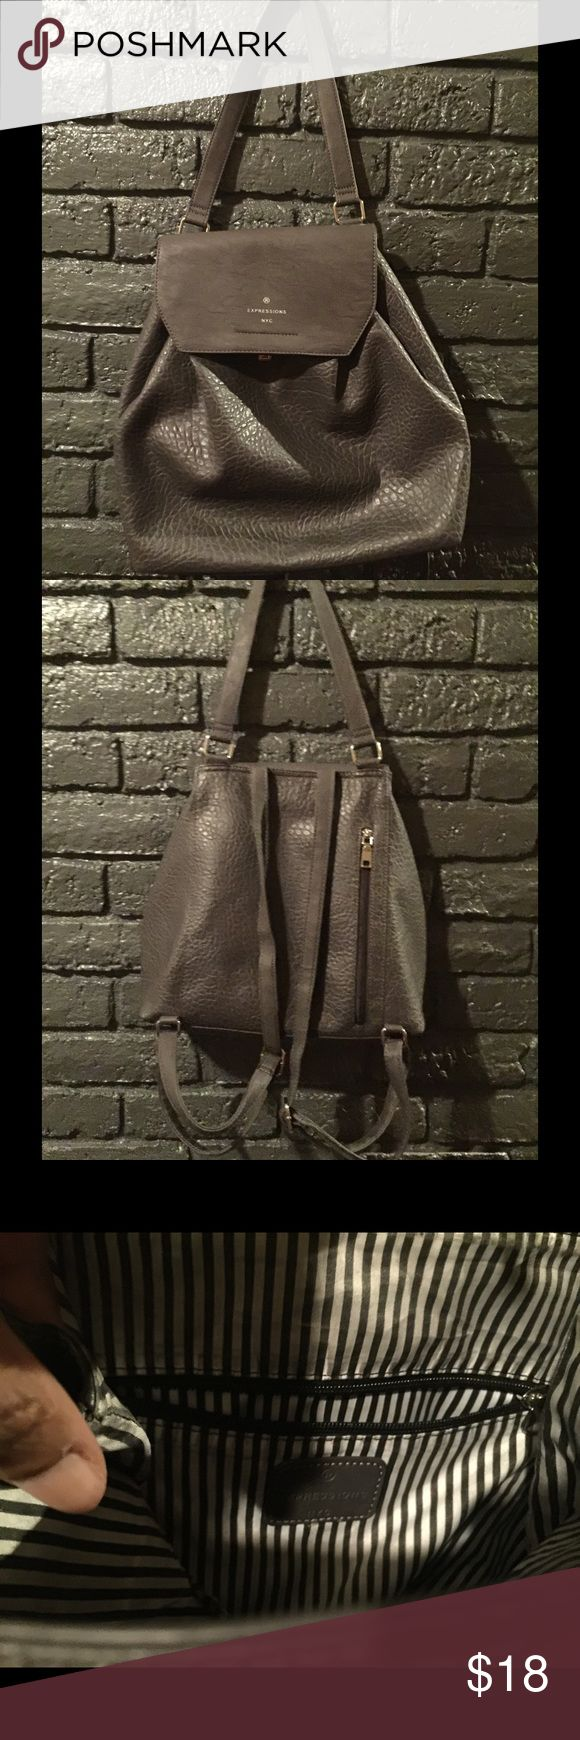 Selling this Gray backpack from Marshalls Store. on Poshmark! My username is: 4everilovedeals. #shopmycloset #poshmark #fashion #shopping #style #forsale #Handbags